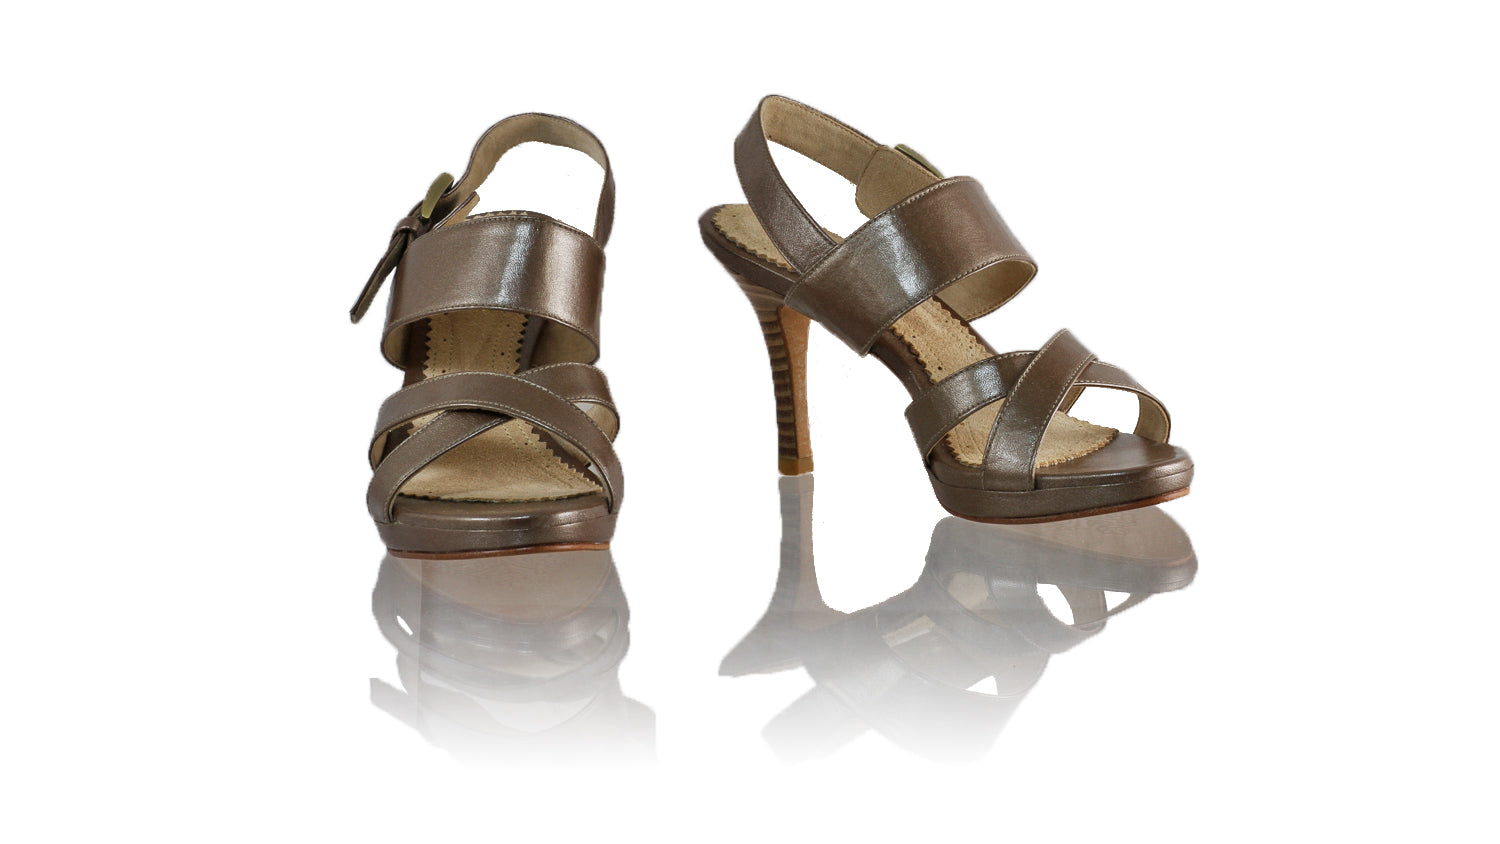 Leather-shoes-Tabitha 90mm SH PF - Bronze-sandals higheel-NILUH DJELANTIK-NILUH DJELANTIK